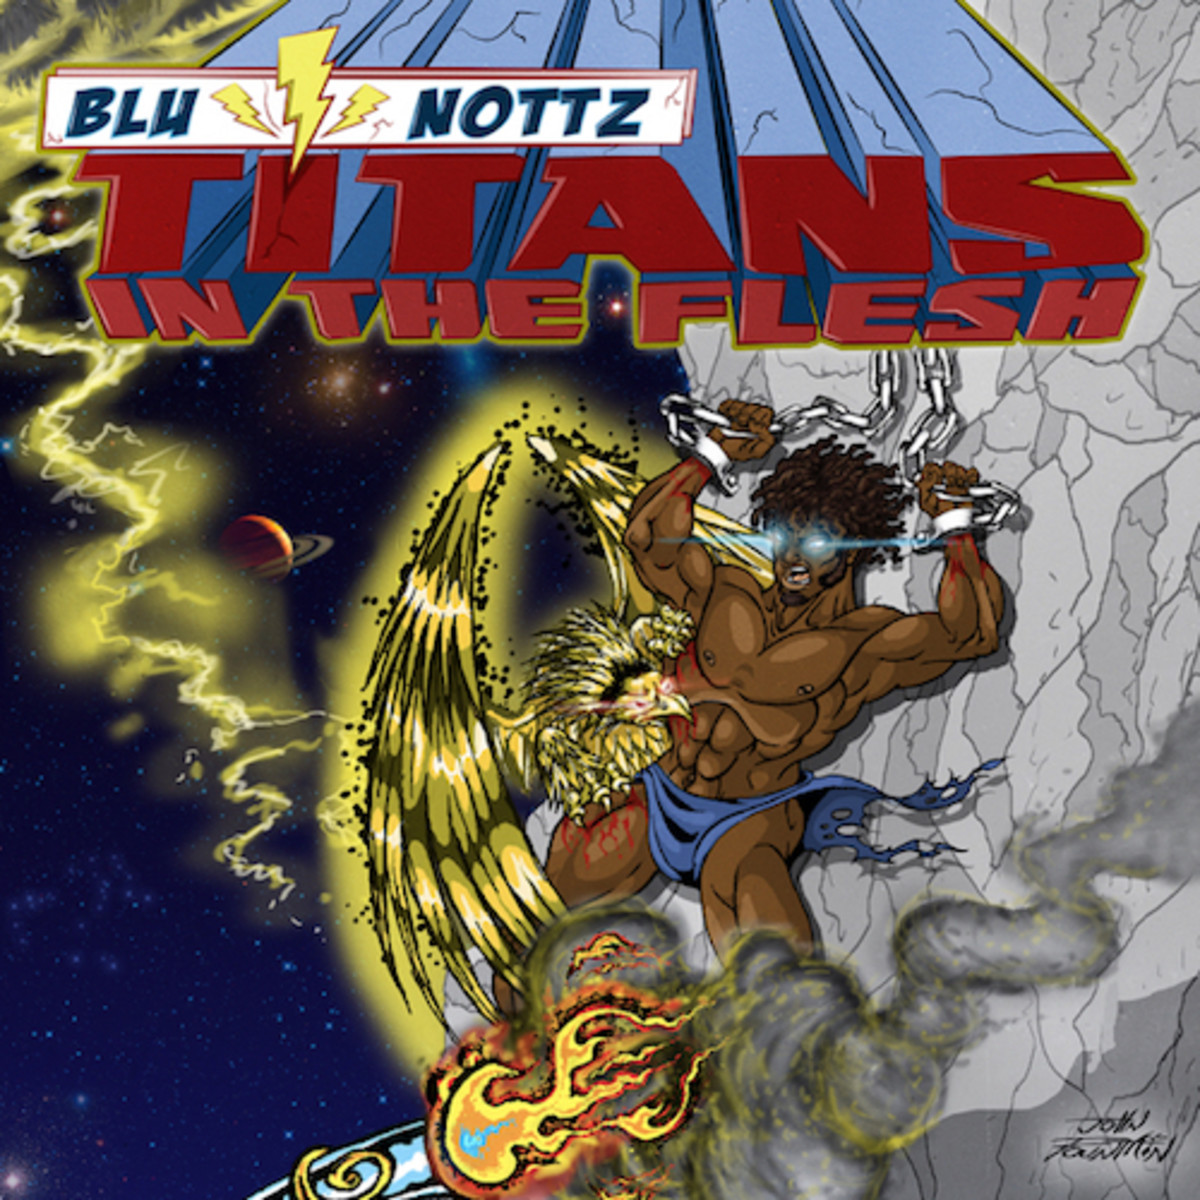 blu-nottz-titans-in-the-flesh.jpg